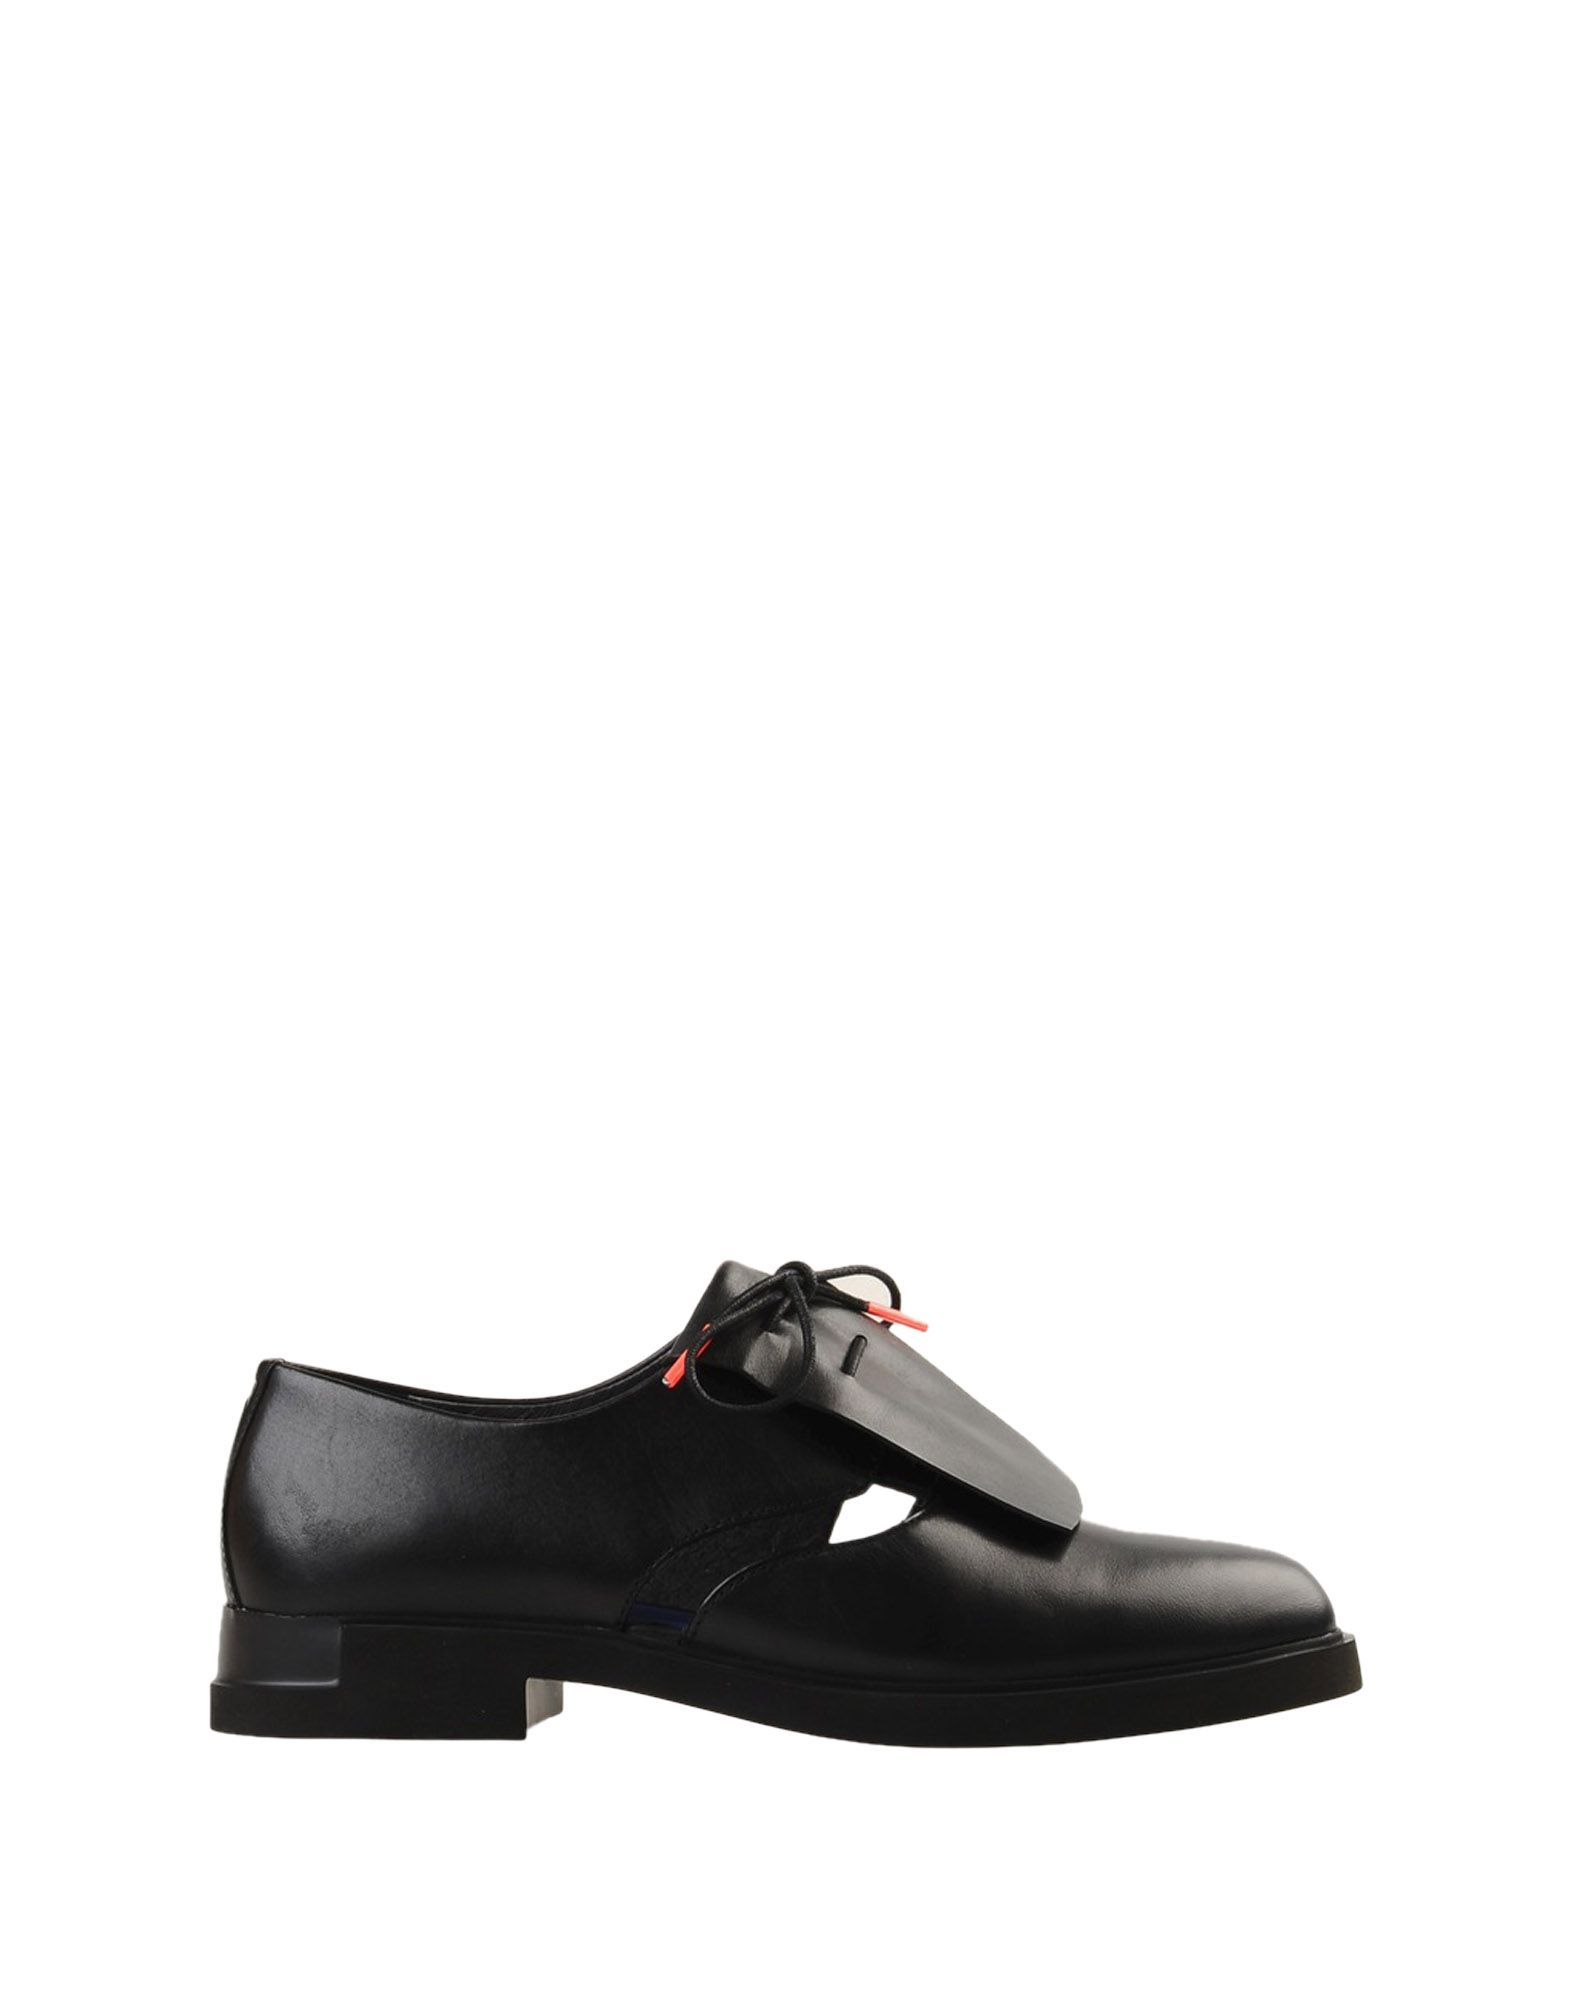 055119977cc5f8 Camper Laced Shoes - Women Camper Laced Shoes online on YOOX United ...